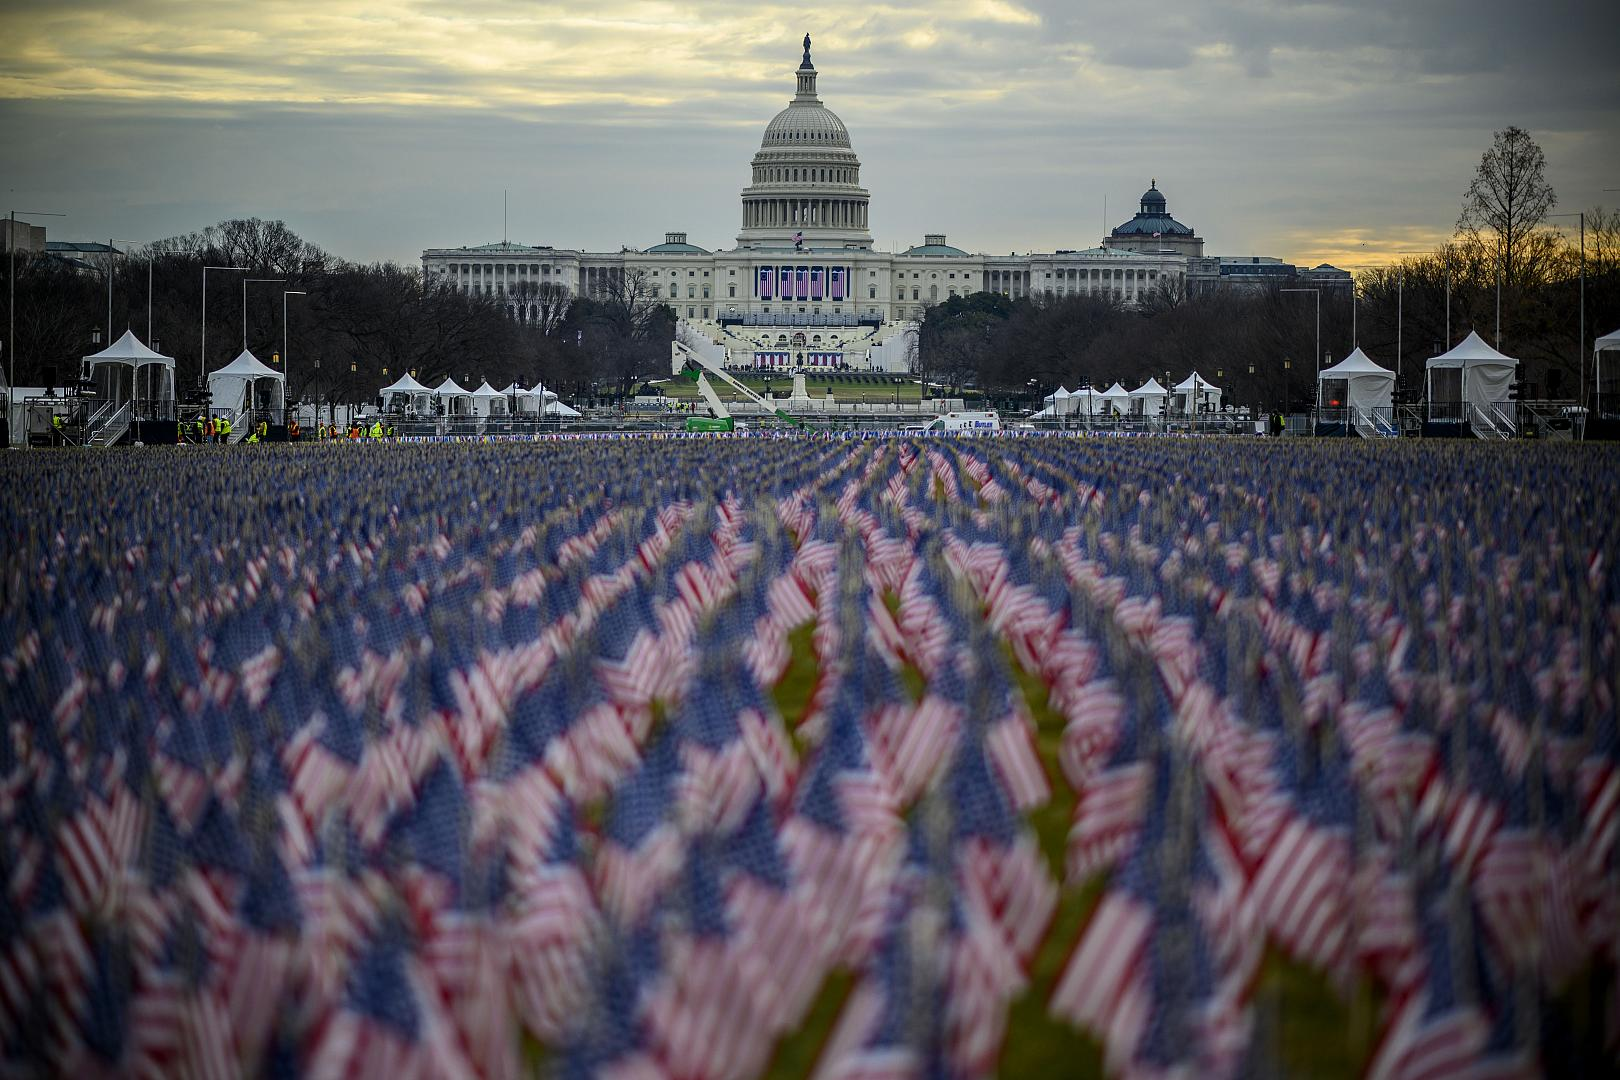 A field of flags is seen on the National Mall ahead of Joe Biden's swearing-in inauguration ceremony as the 46th US president in Washington, DC. January 18, 2021.